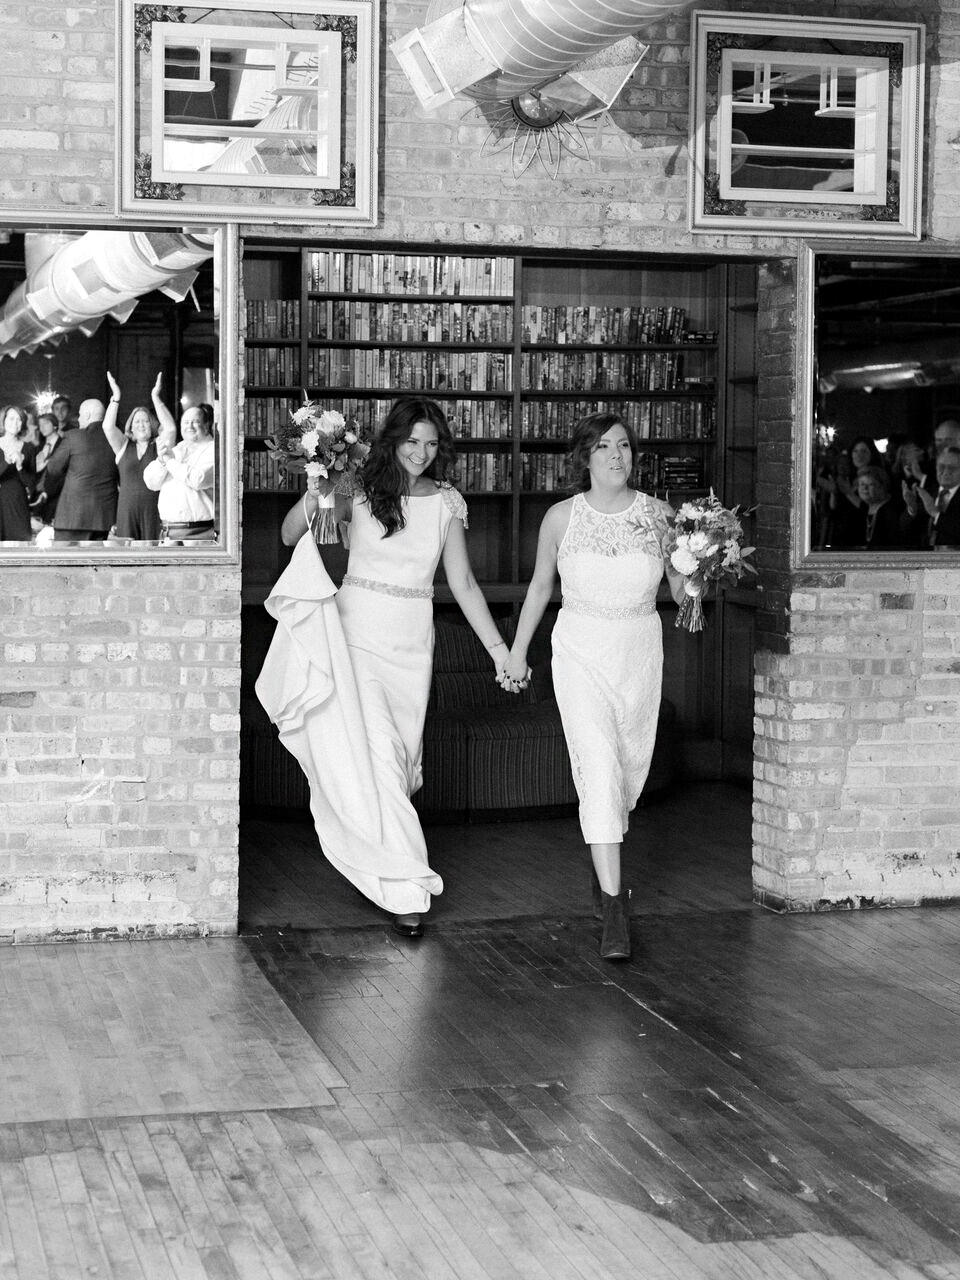 Kick off the party with a special reception entrance, just like these brides did.